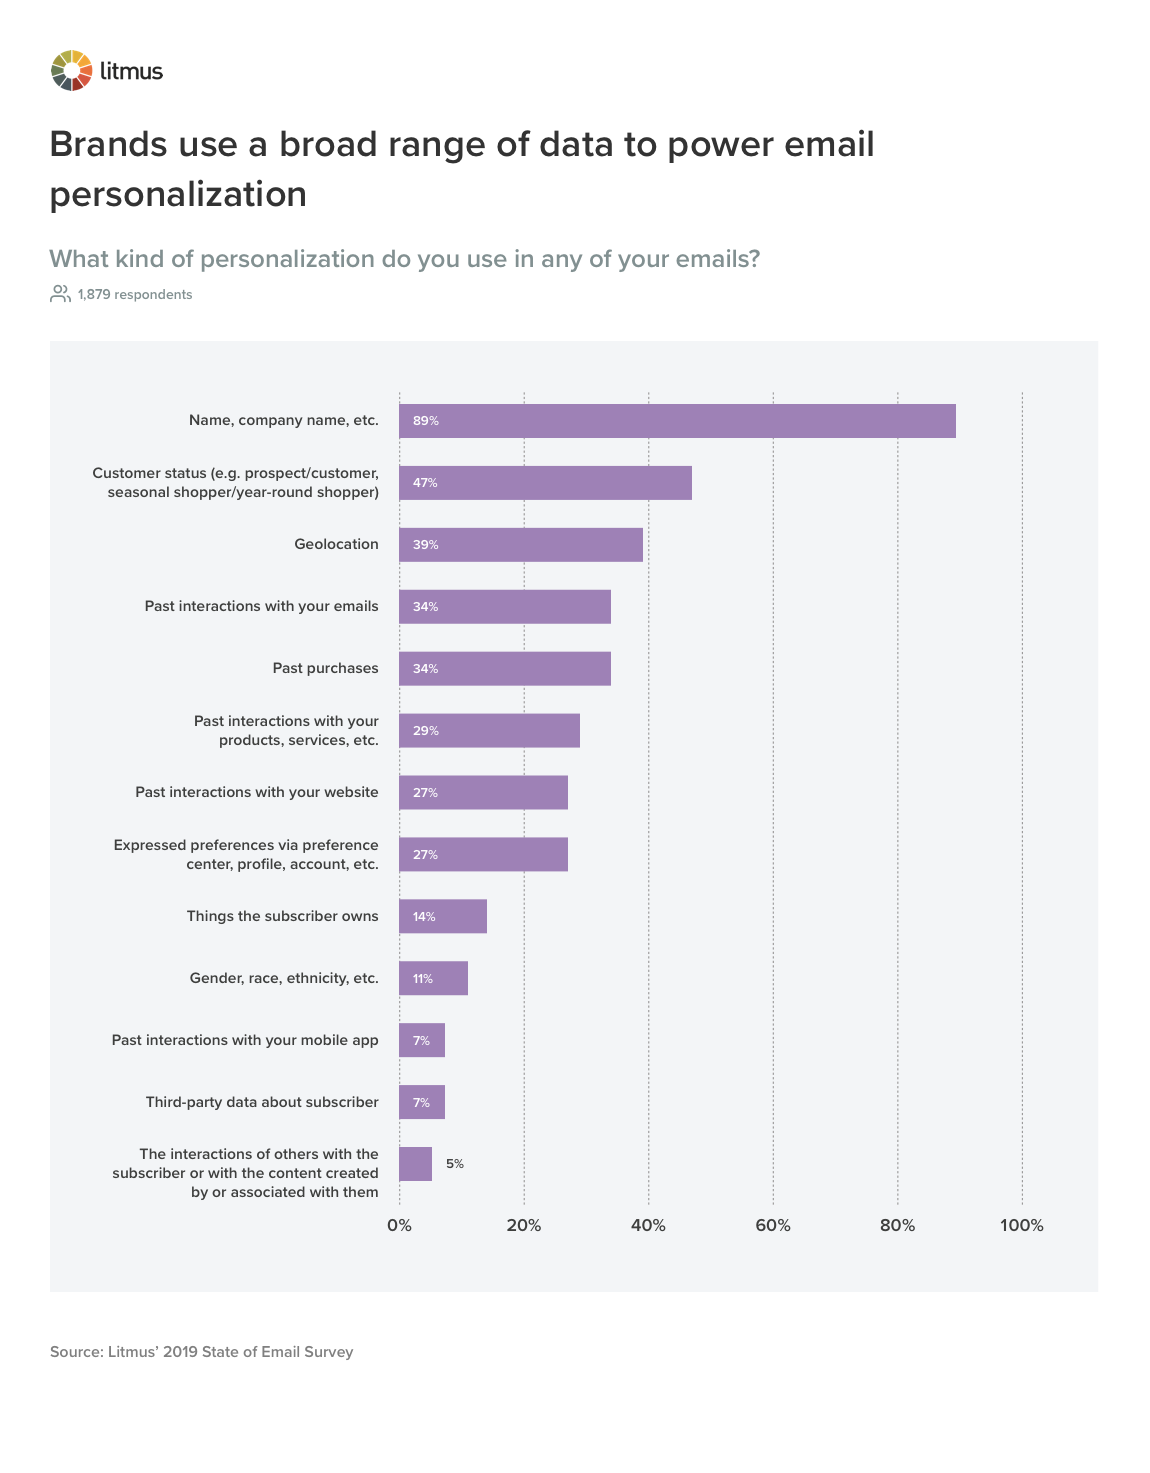 Litmus chart: What kind of personalization do you use in any of your emails?